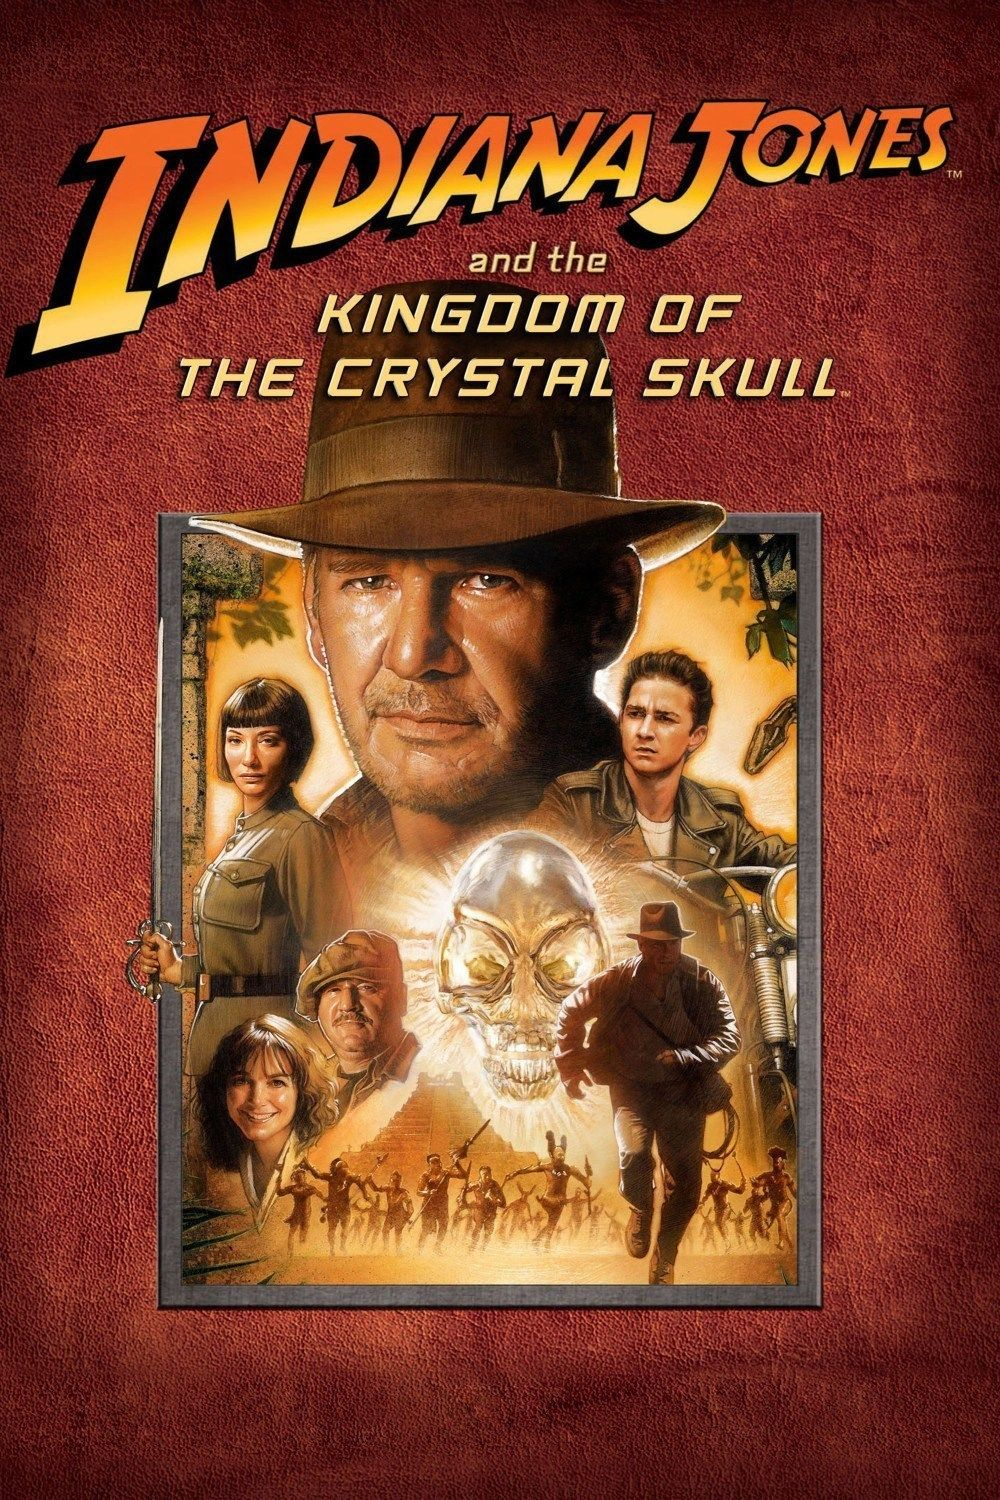 Image result for indiana jones and the kingdom of the crystal skull 2008 poster